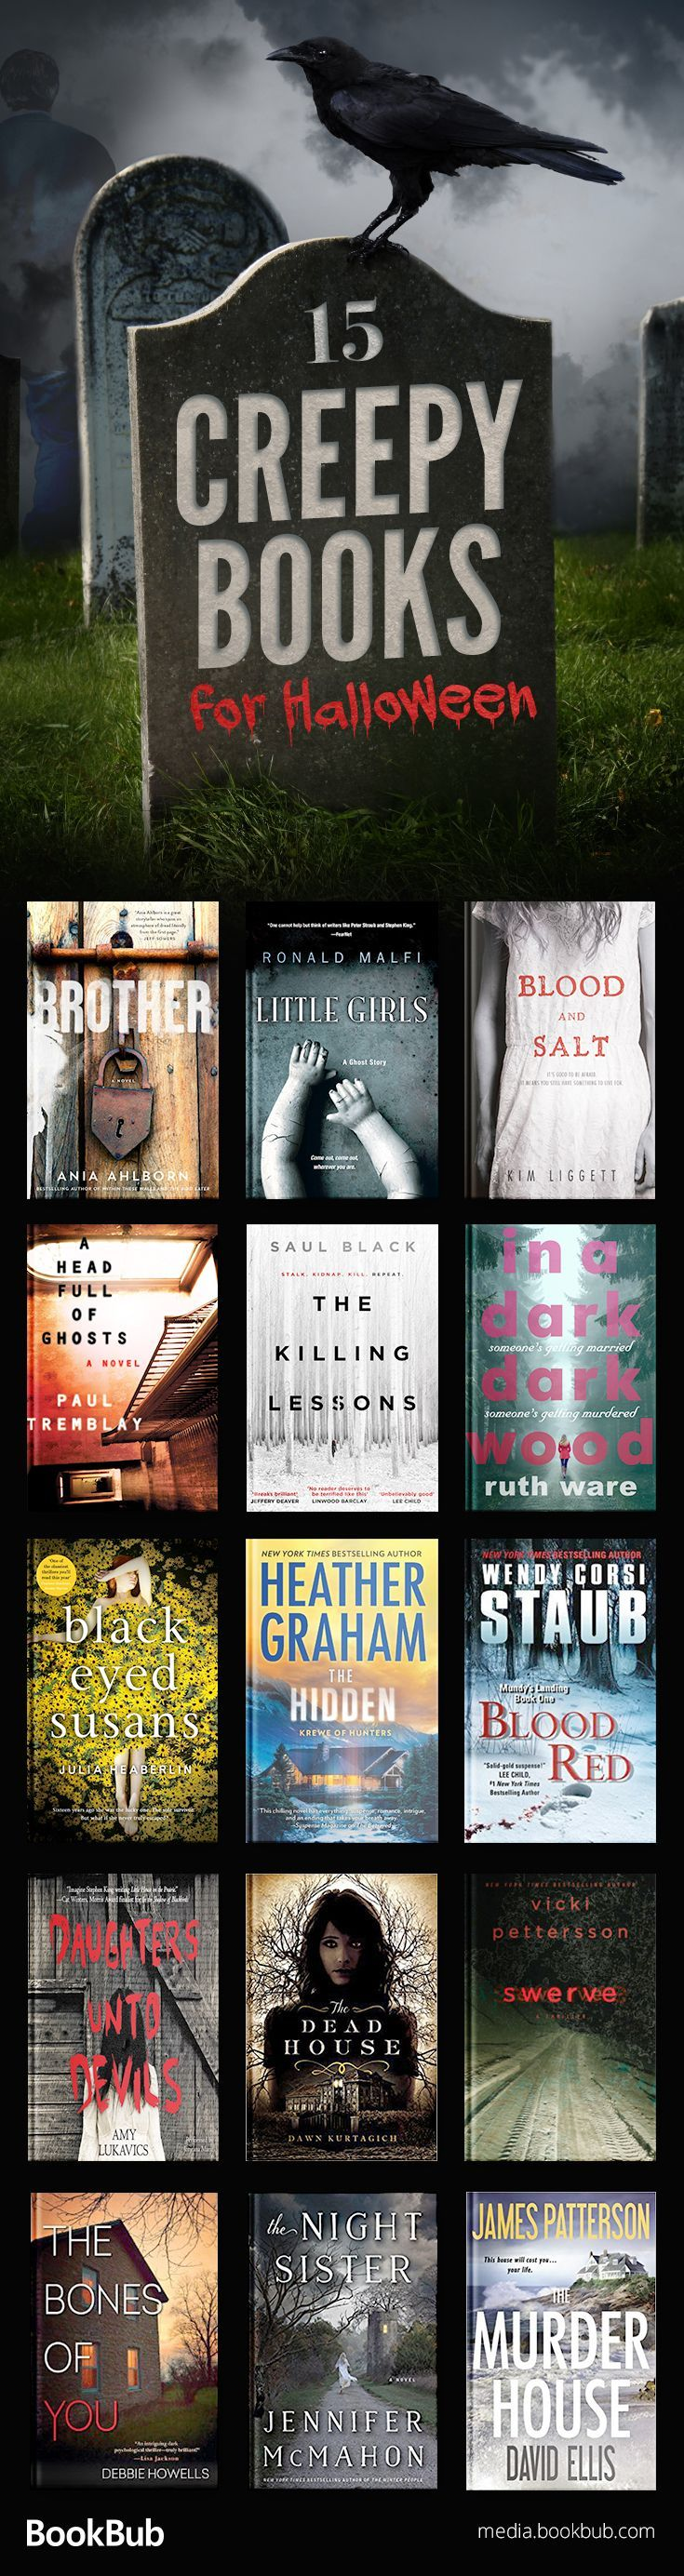 15 creepy books to read for Halloween. Including suspenseful thrillers, mystery books, twisty books, and more.